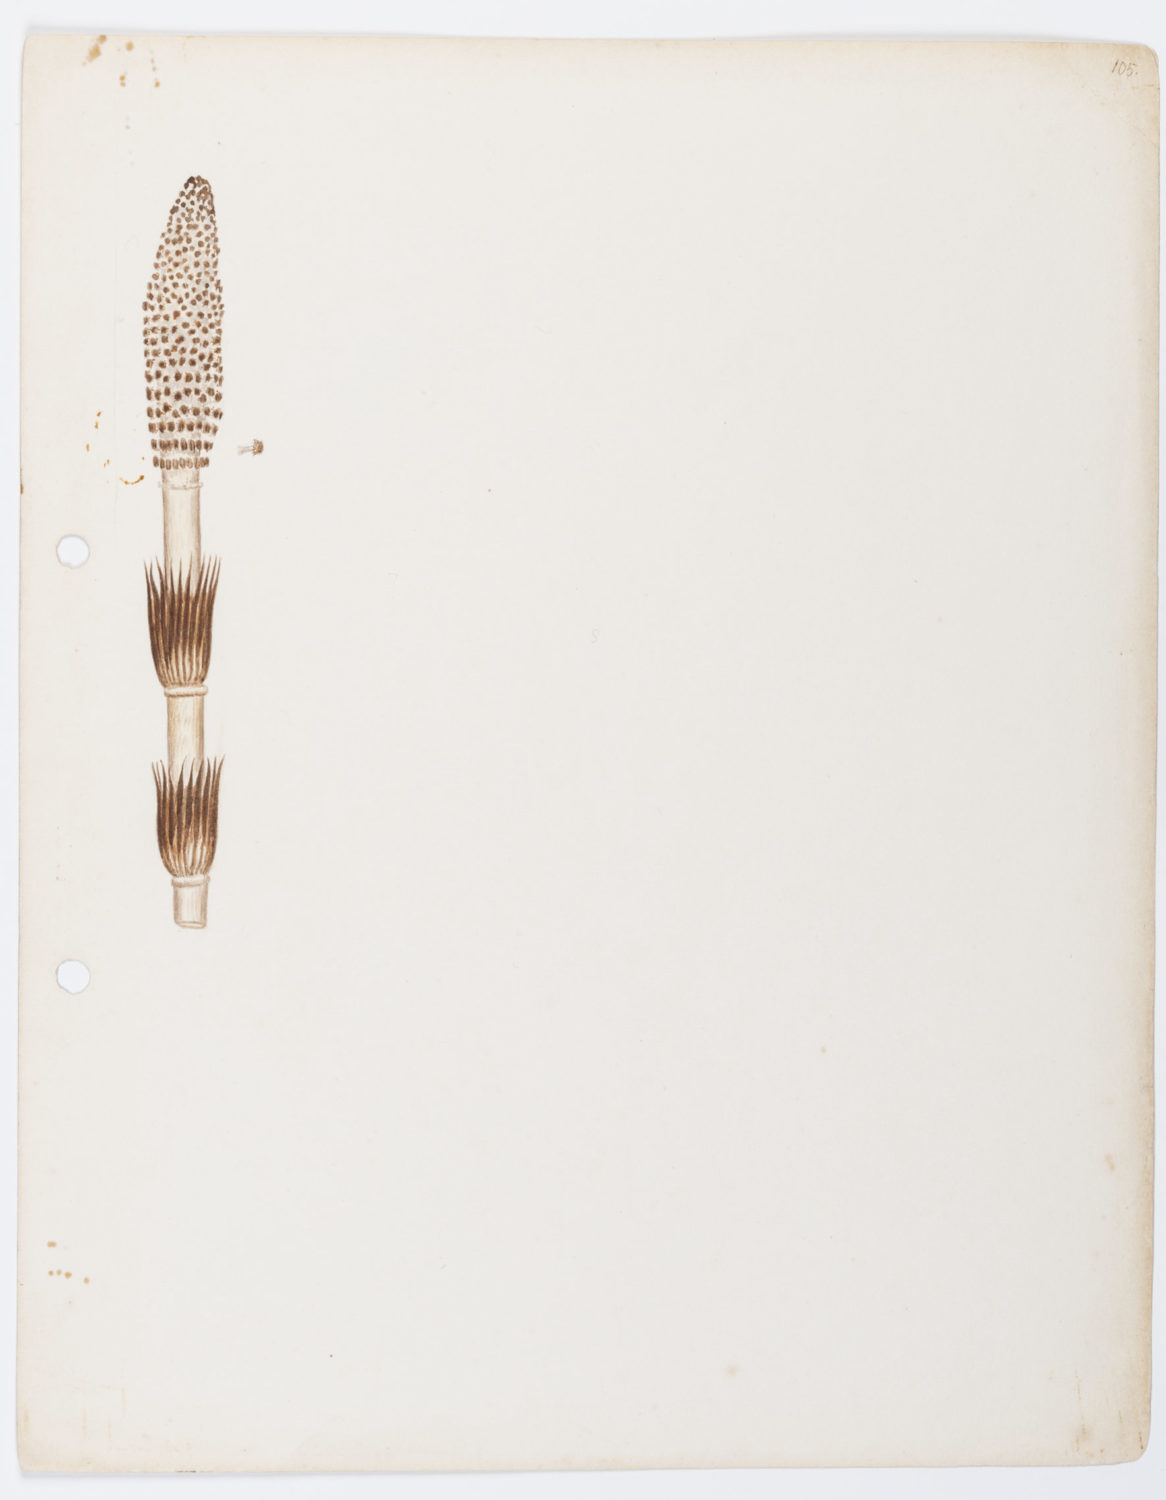 illustration of a horsetail plant by Keble Martin